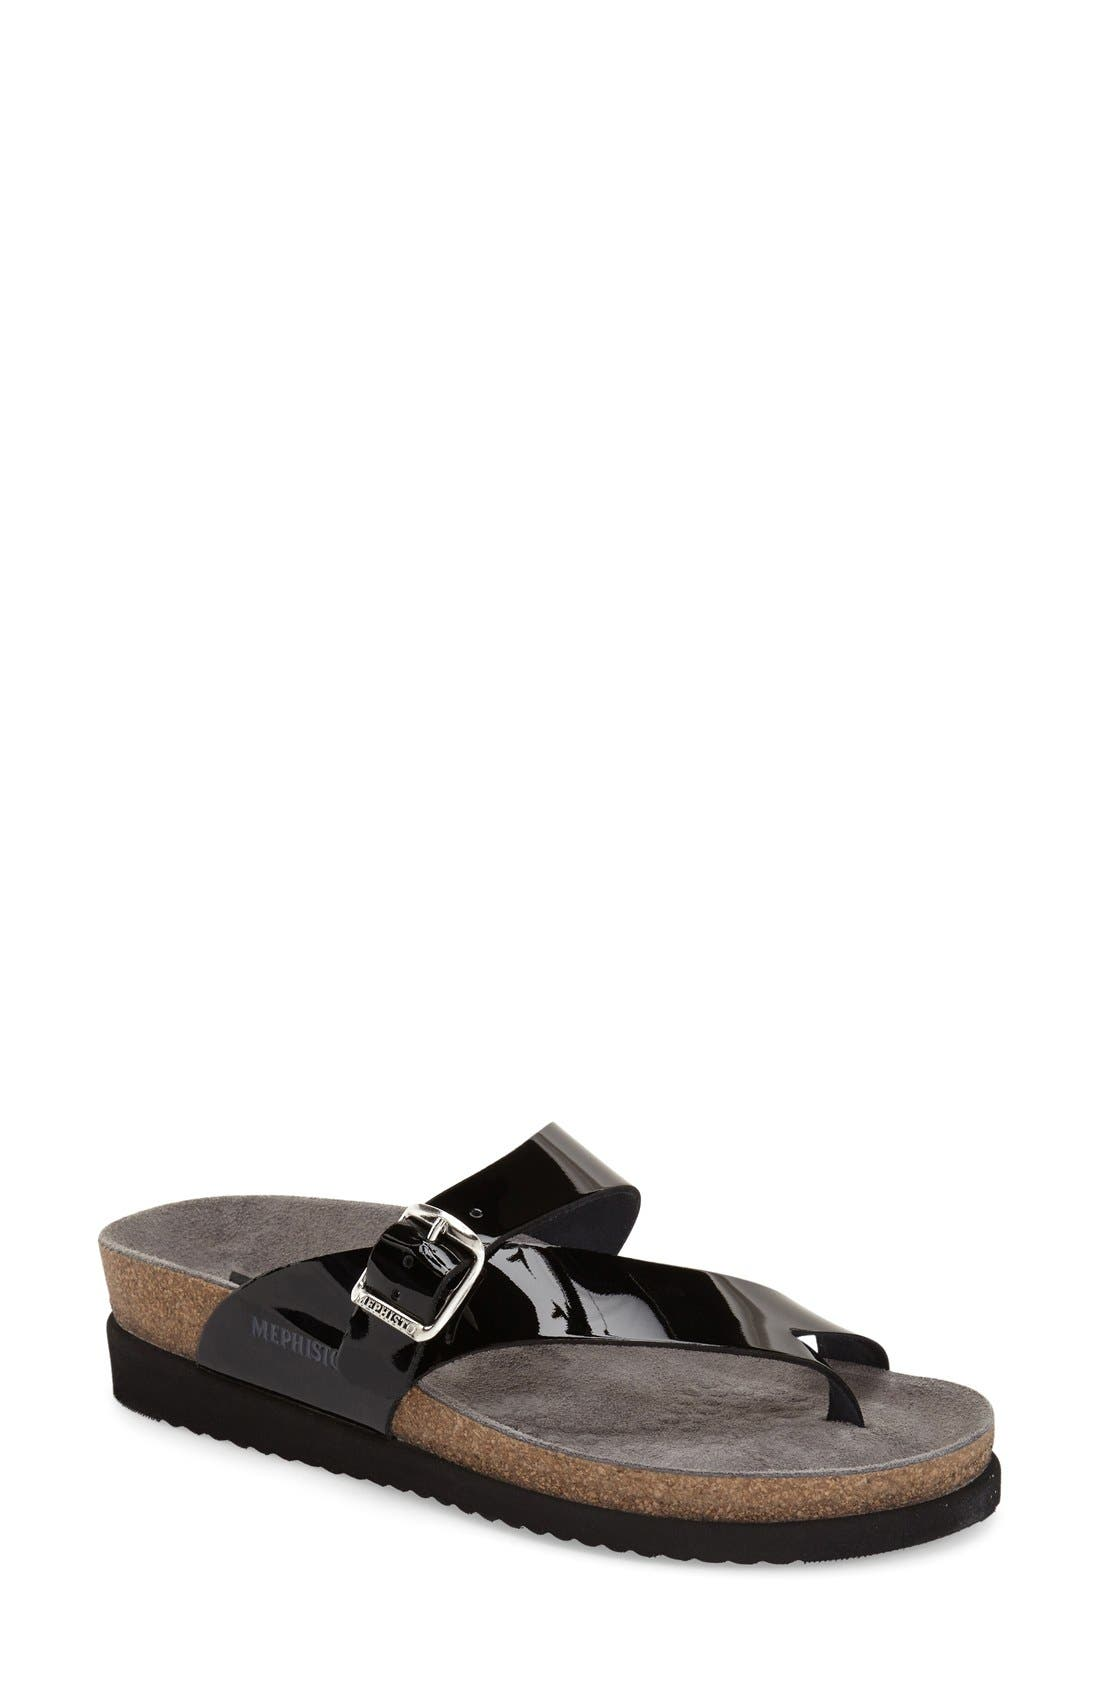 Alternate Image 1 Selected - Mephisto 'Helen' Sandal (Women)